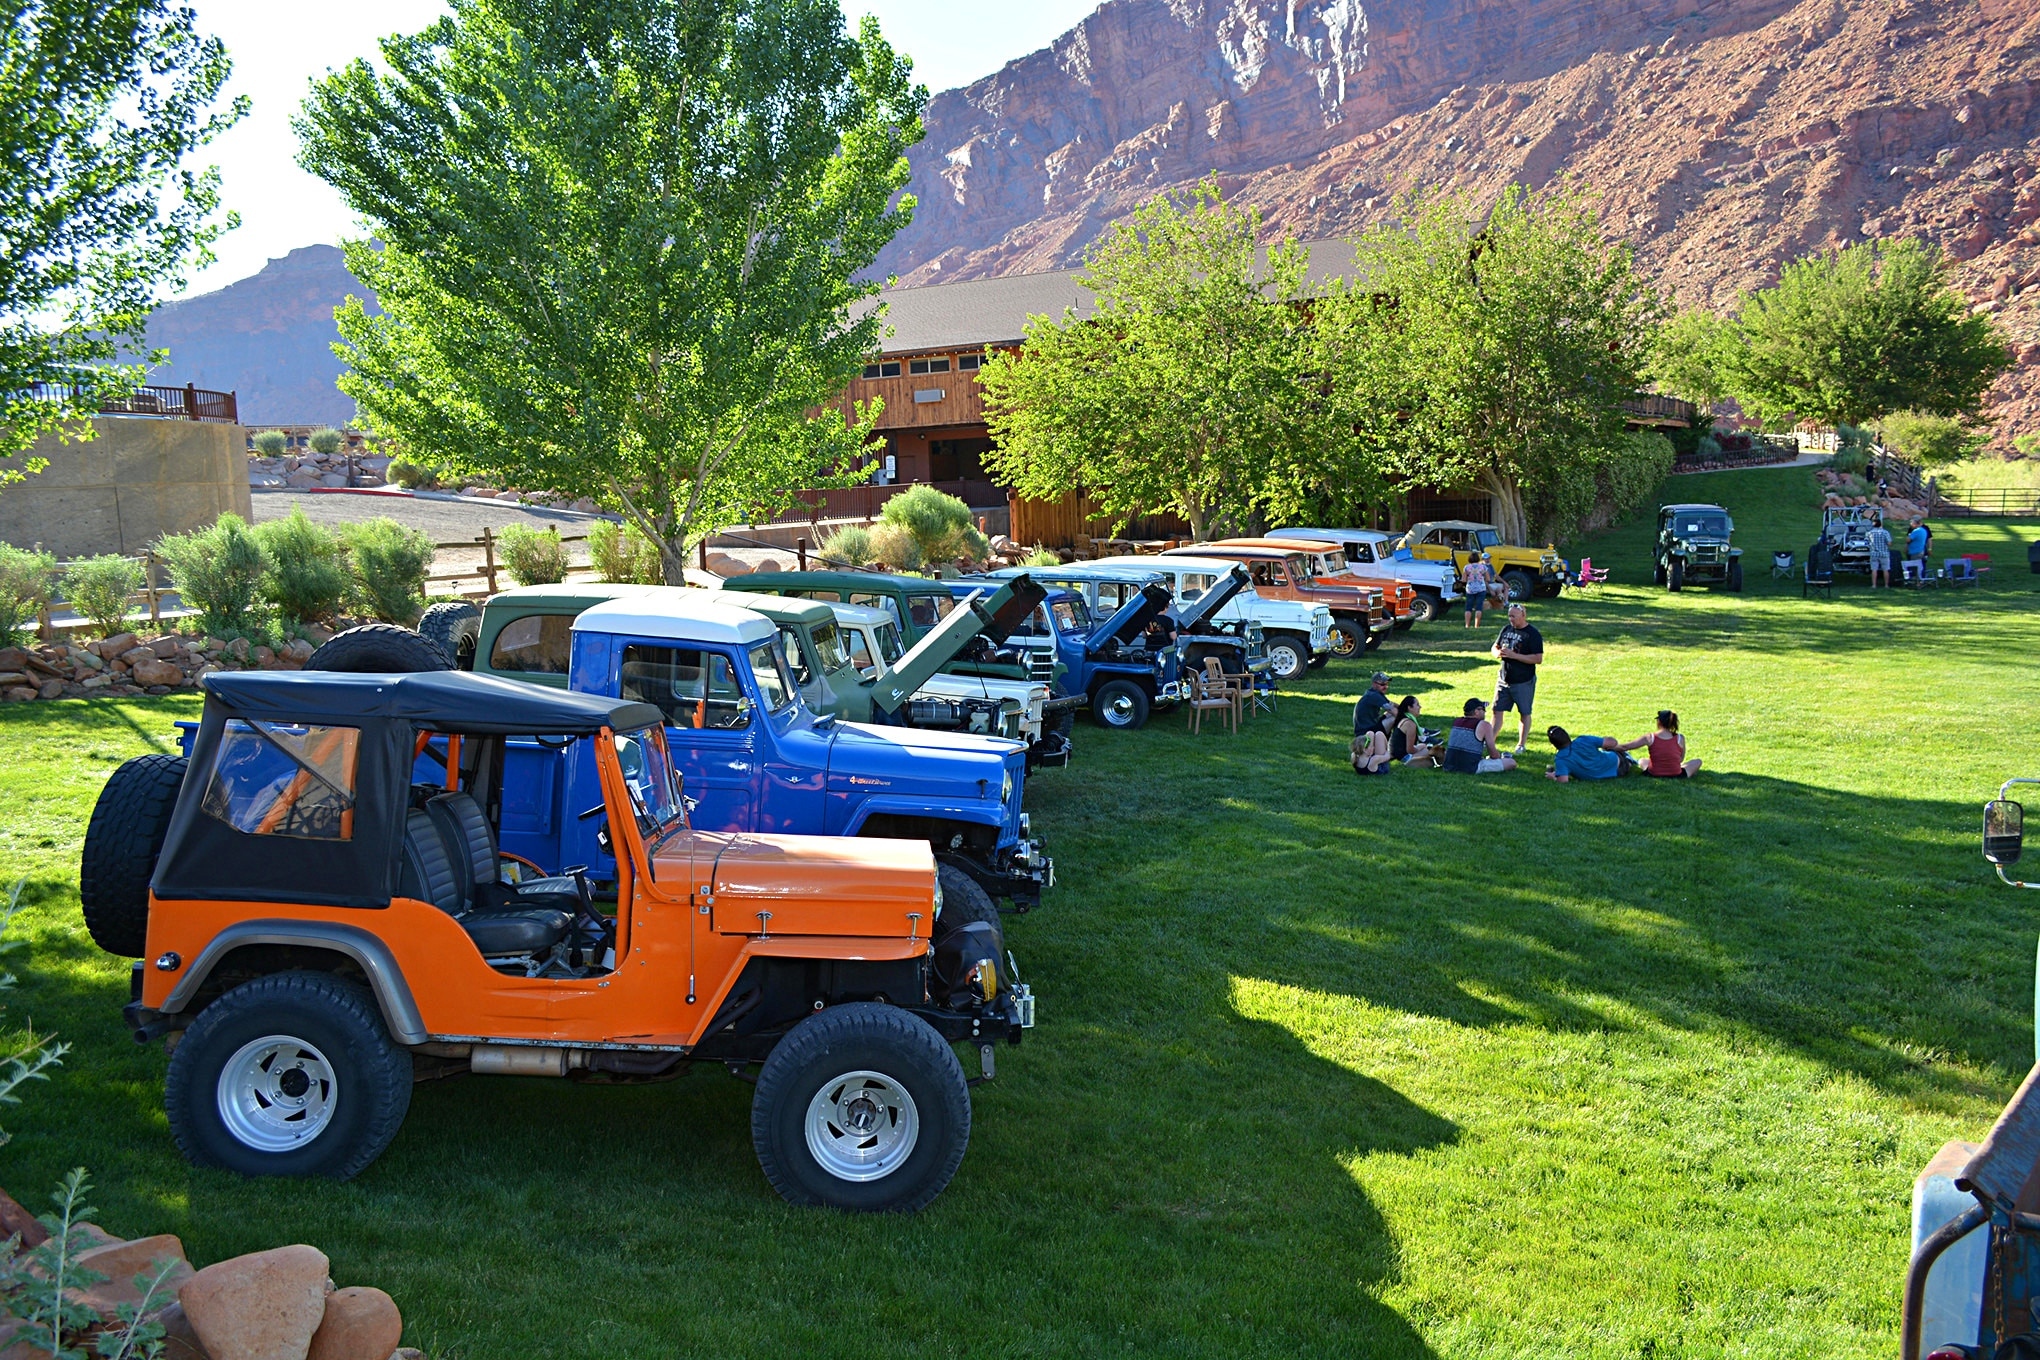 Willys wagons had the highest numbers in attendance as always, but there were many more flatfenders this year, with the CJ-3B being very popular.